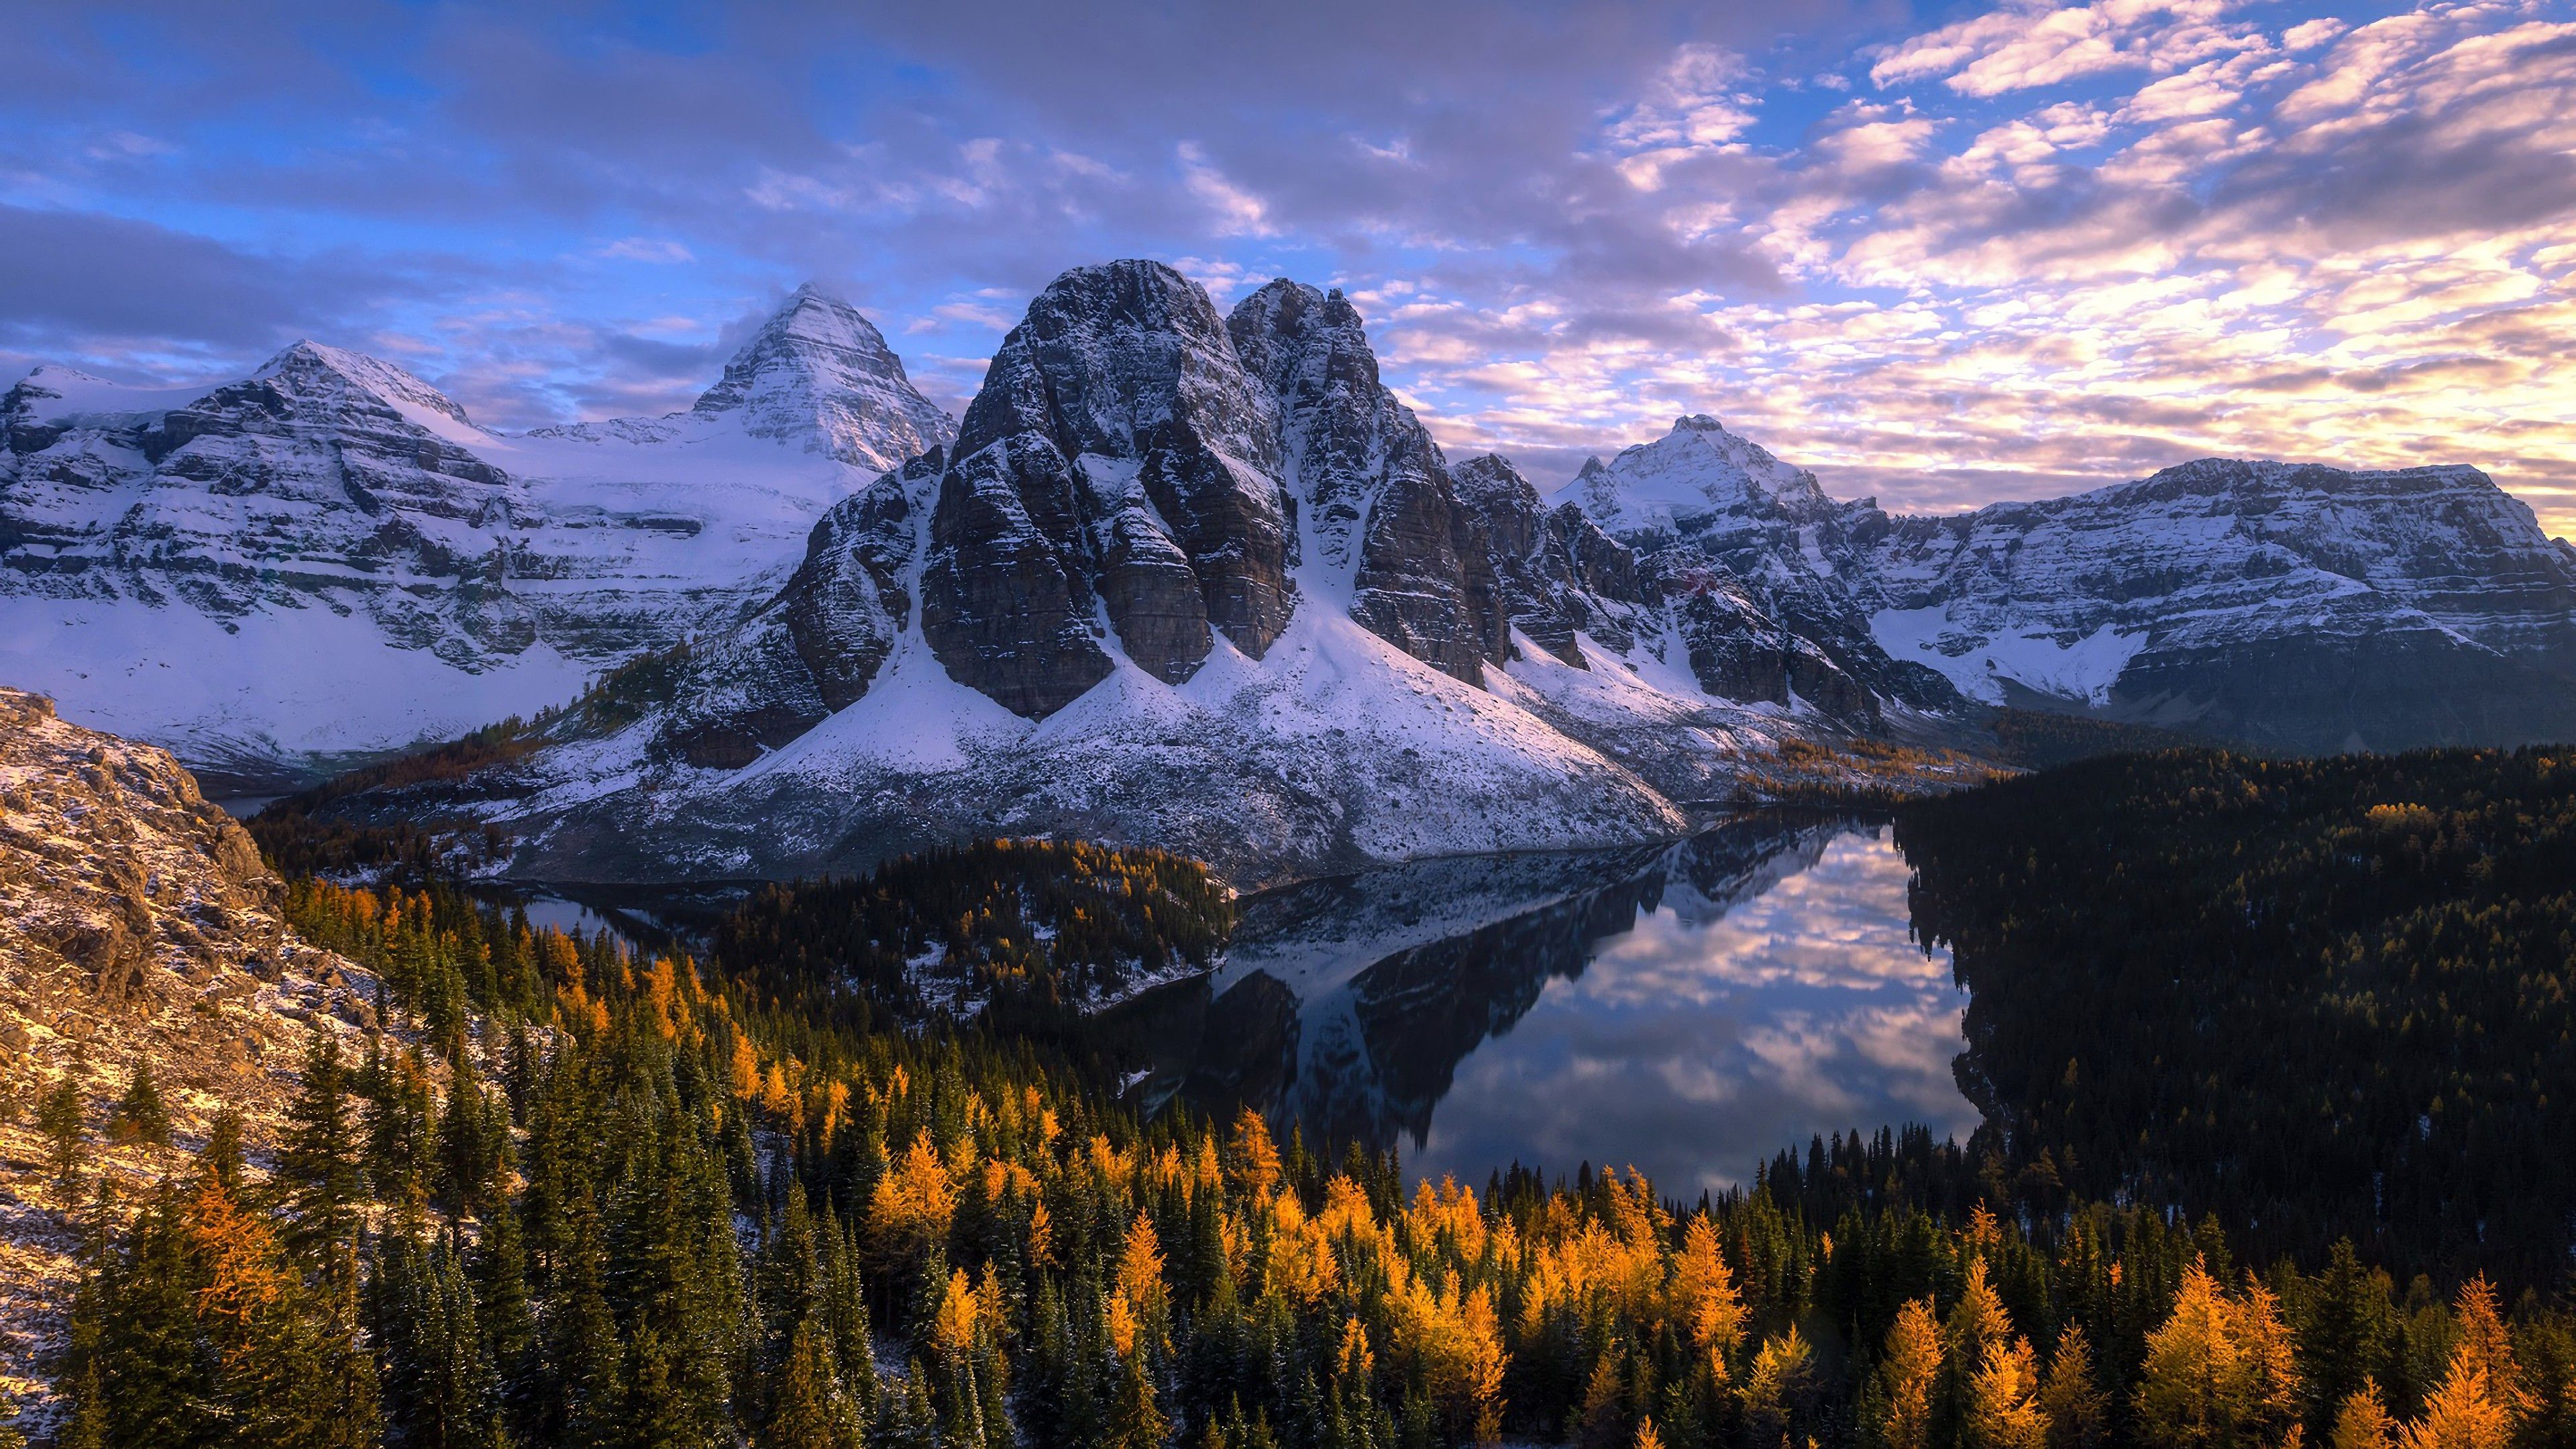 Mountain Forest 4K Wallpapers - Top Free Mountain Forest ...